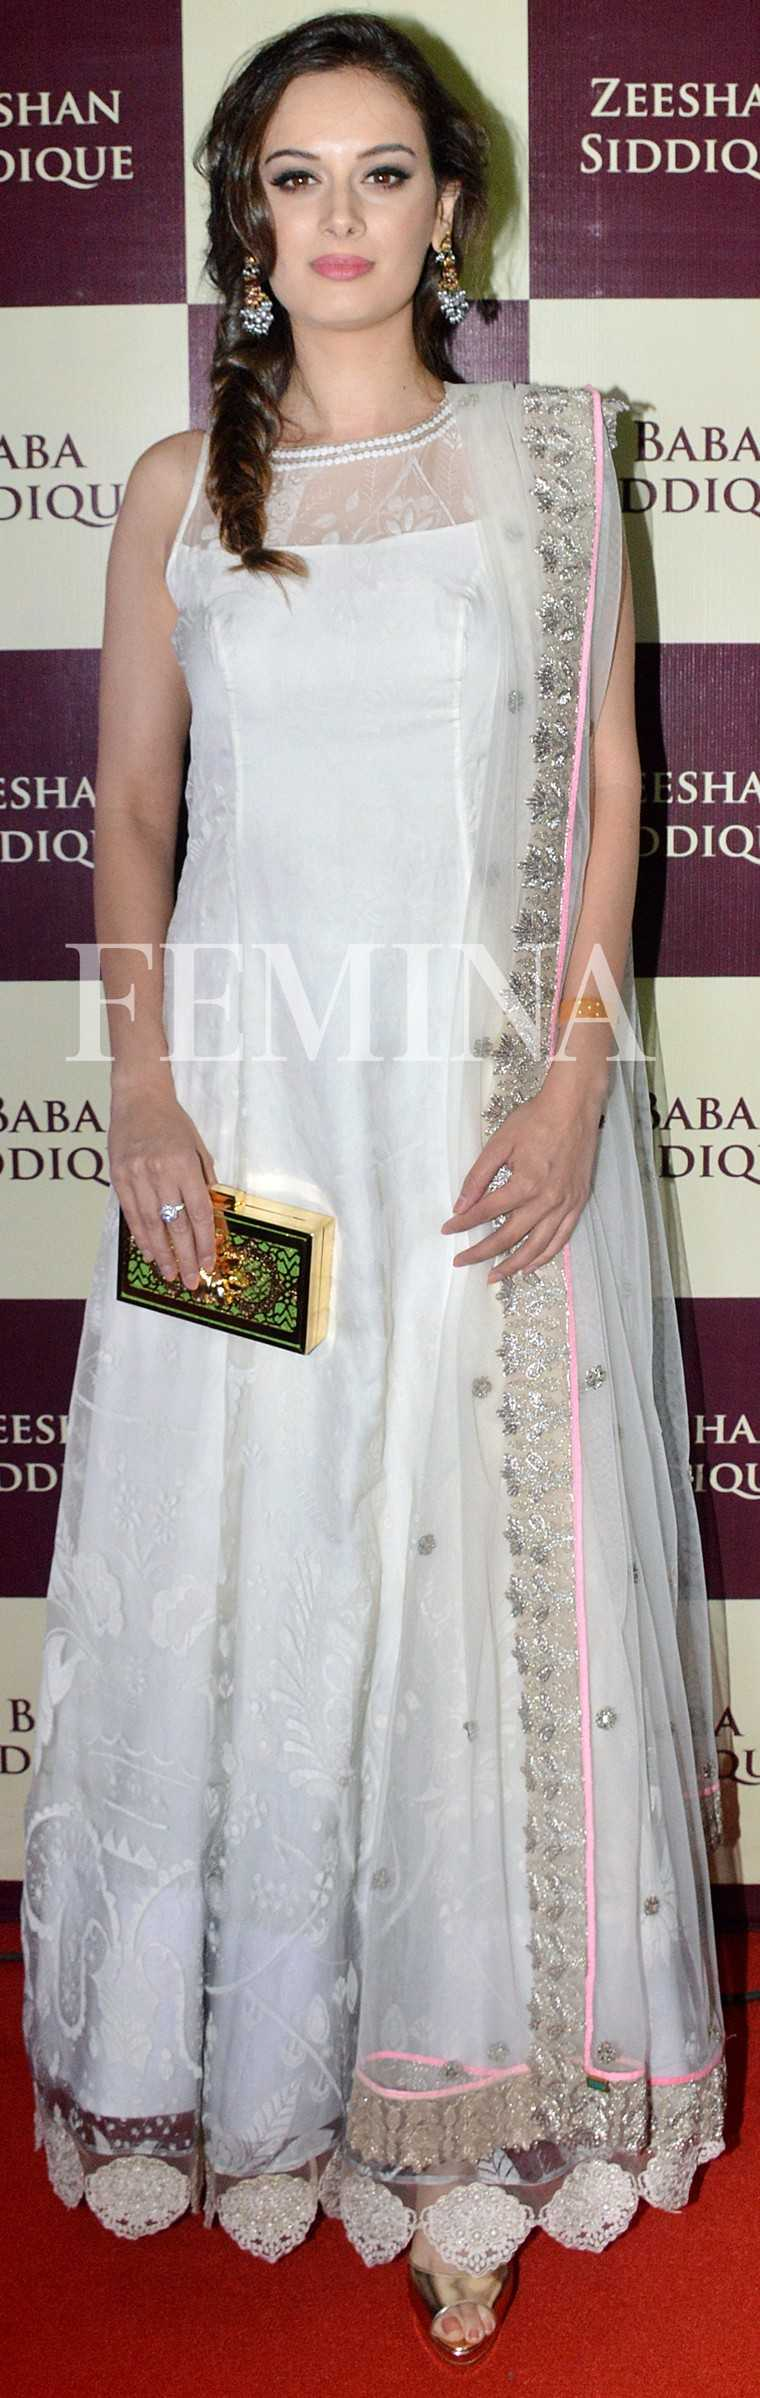 Evelyn Sharma Evelyn looks flawless in her Amoha anarkali. Minawala jewellery, a Garéma clutch and a messy fishtail braid completed her look.